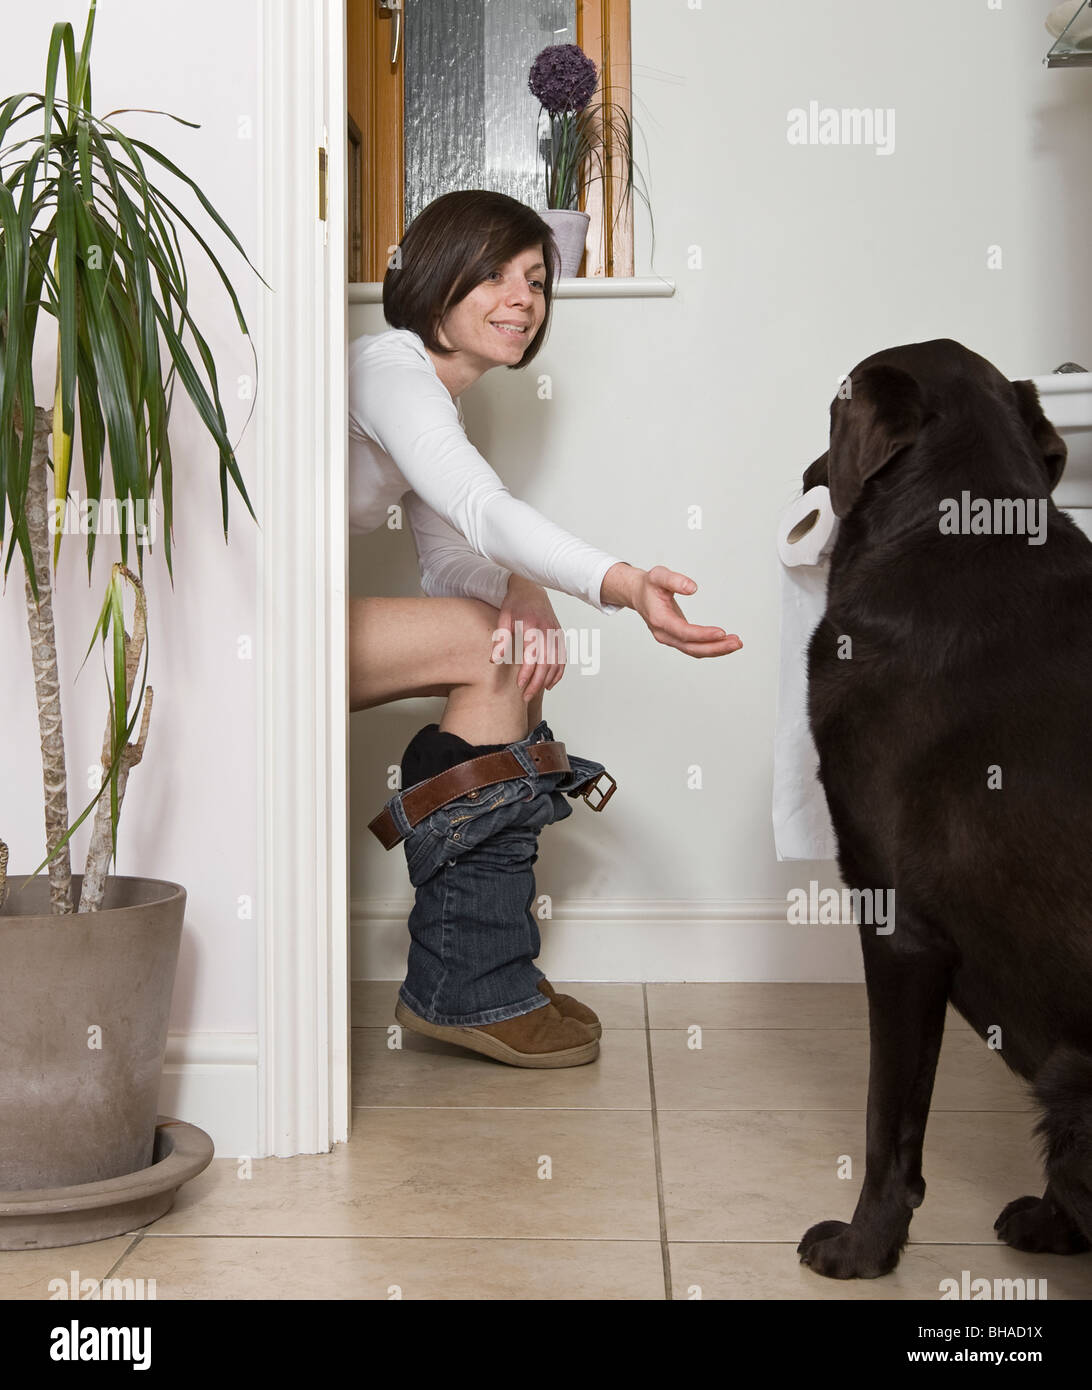 Shot Of A 30s Woman In The Bathroom And Dog Bringing The Toilet Roll